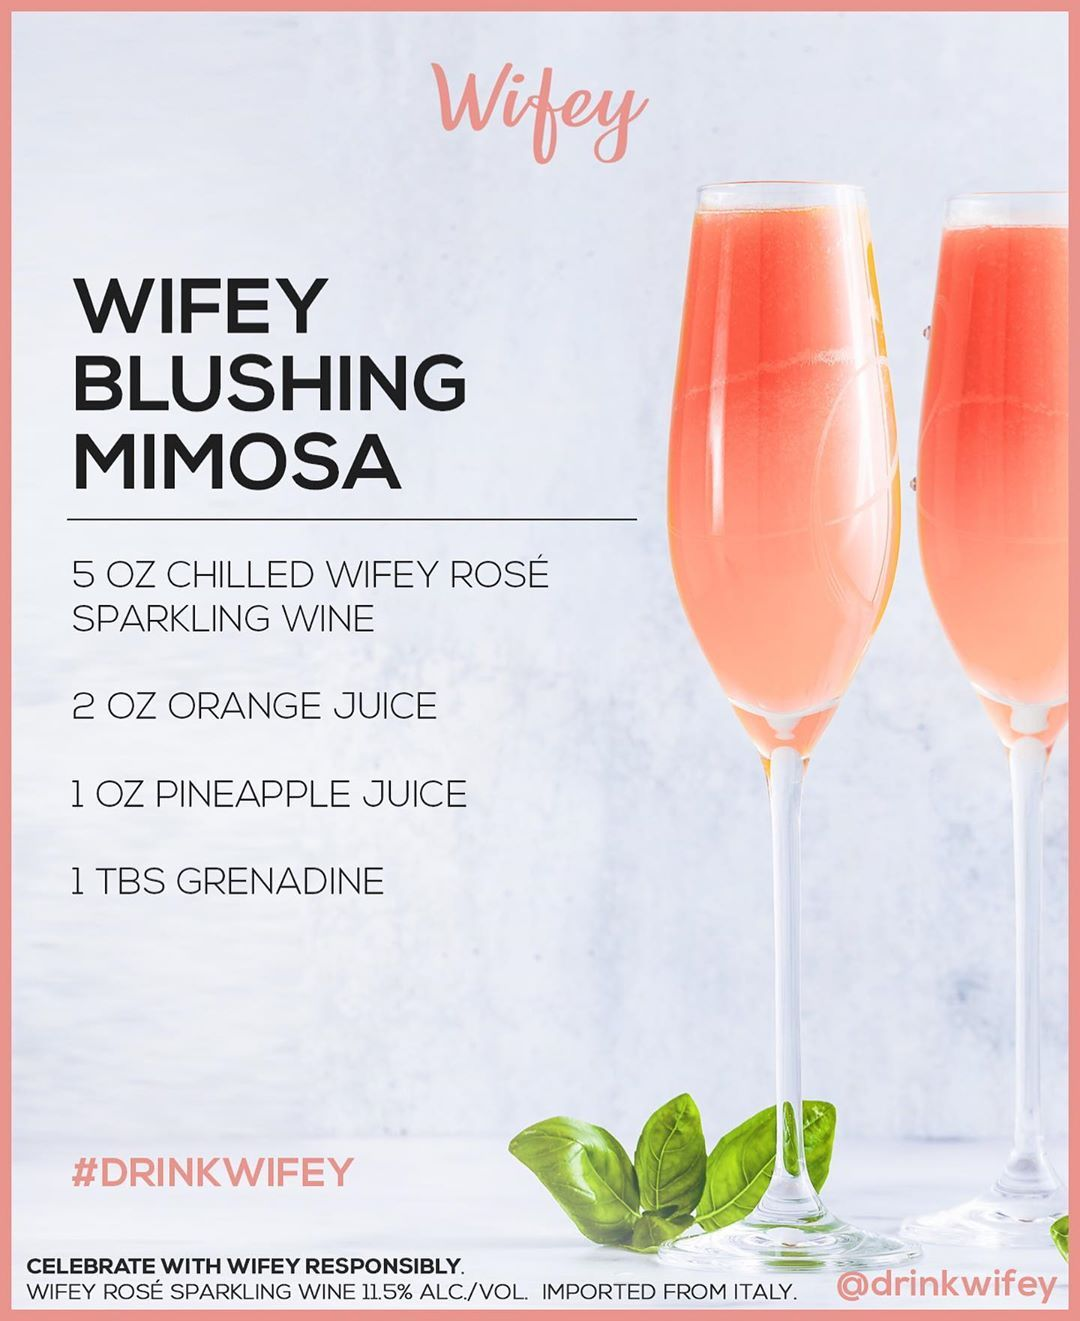 Wifey Rose On Instagram Celebrate Nationalmimosaday With A Wifey Blushing Mimosa Cheers En 2020